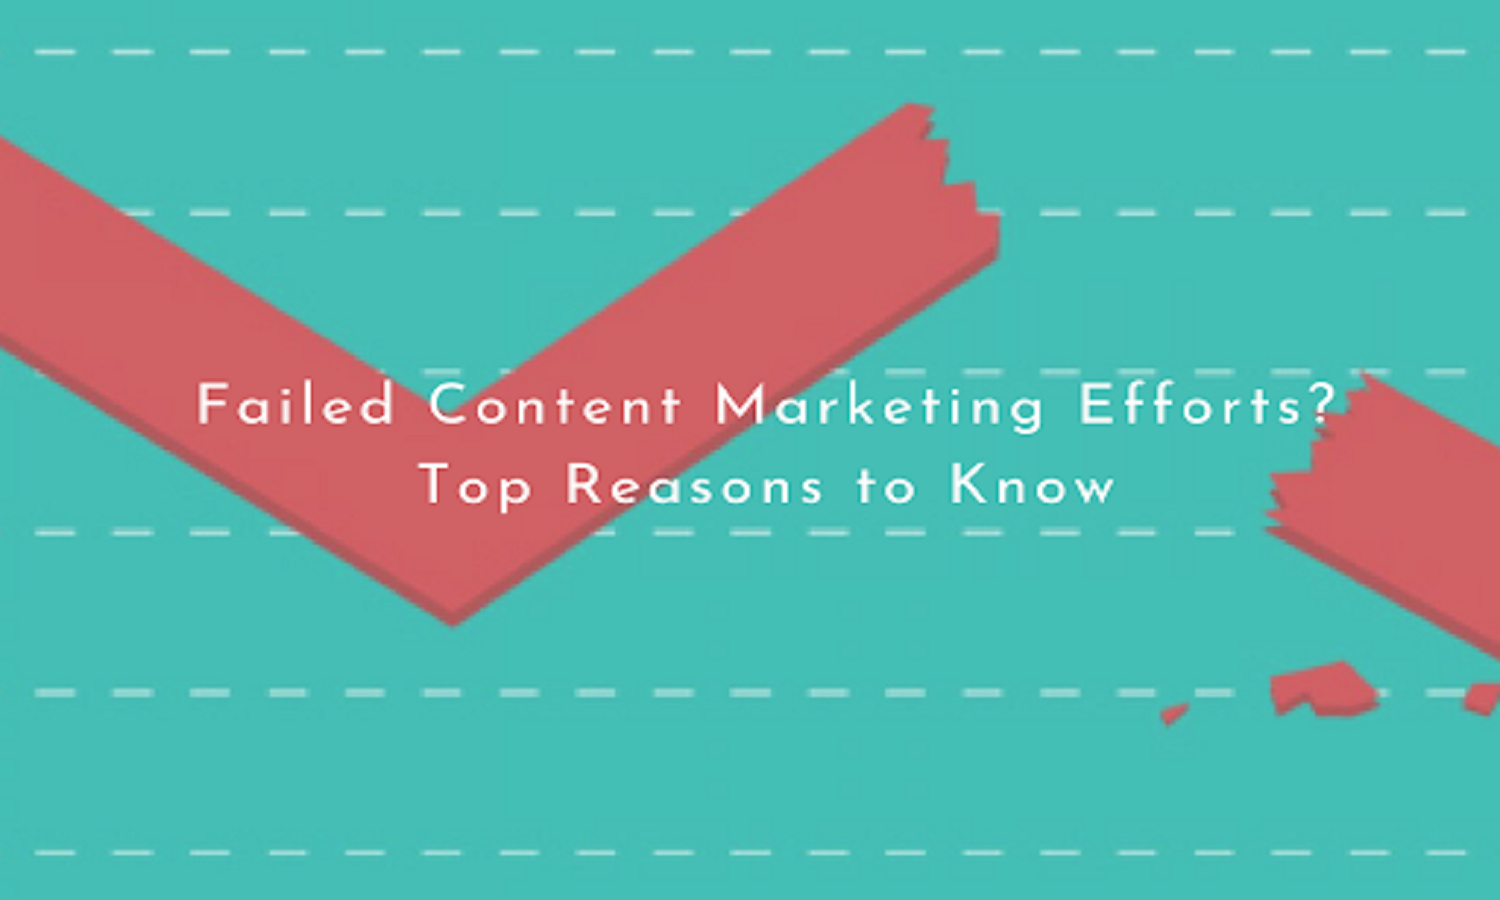 Failed Content Marketing Efforts? Top Reasons to Know